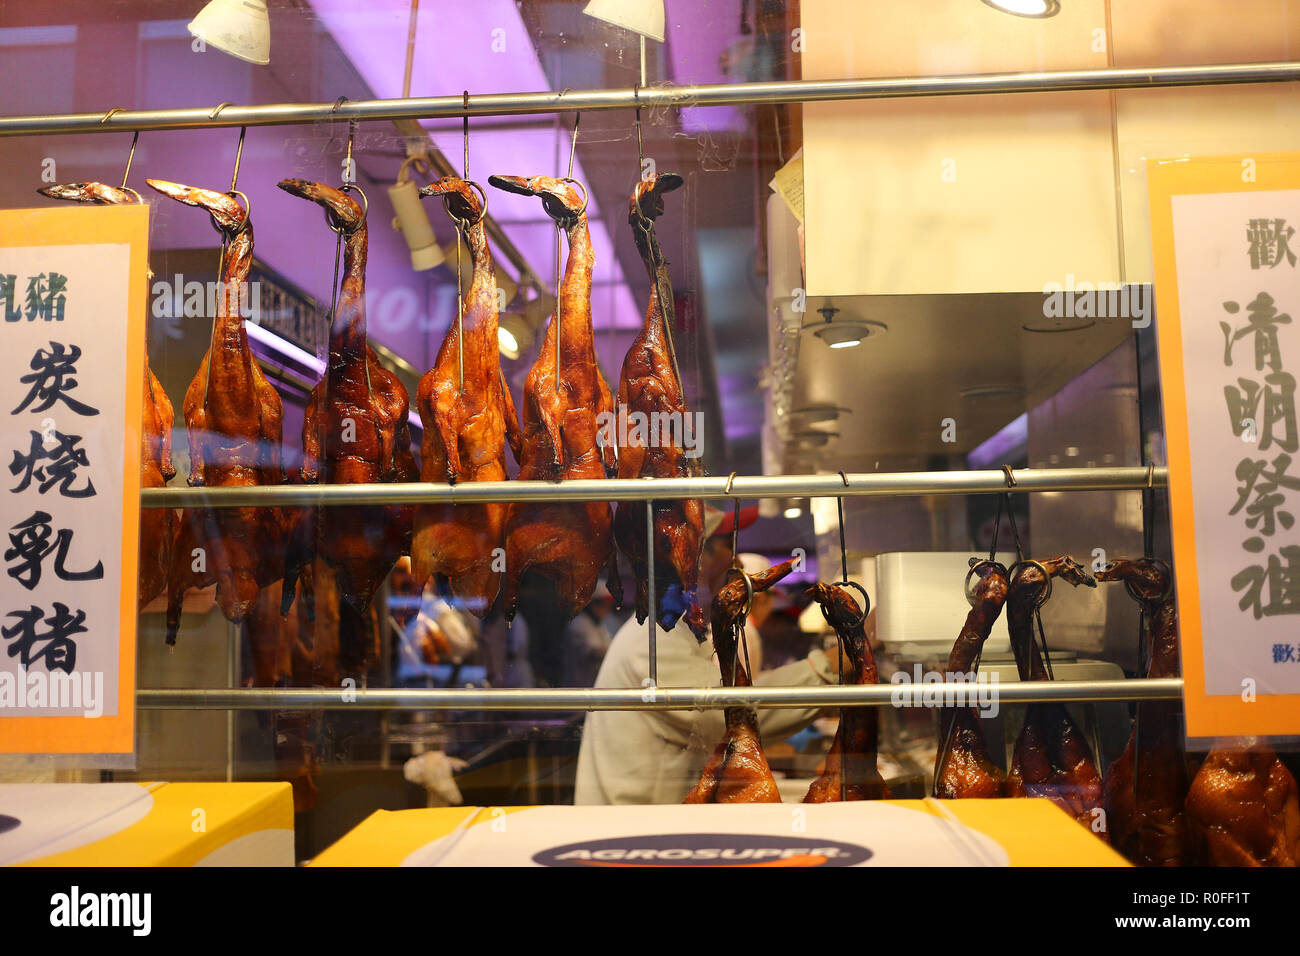 Hanging ducks in a Chinese restaurant in Chinatown, NY - Stock Image